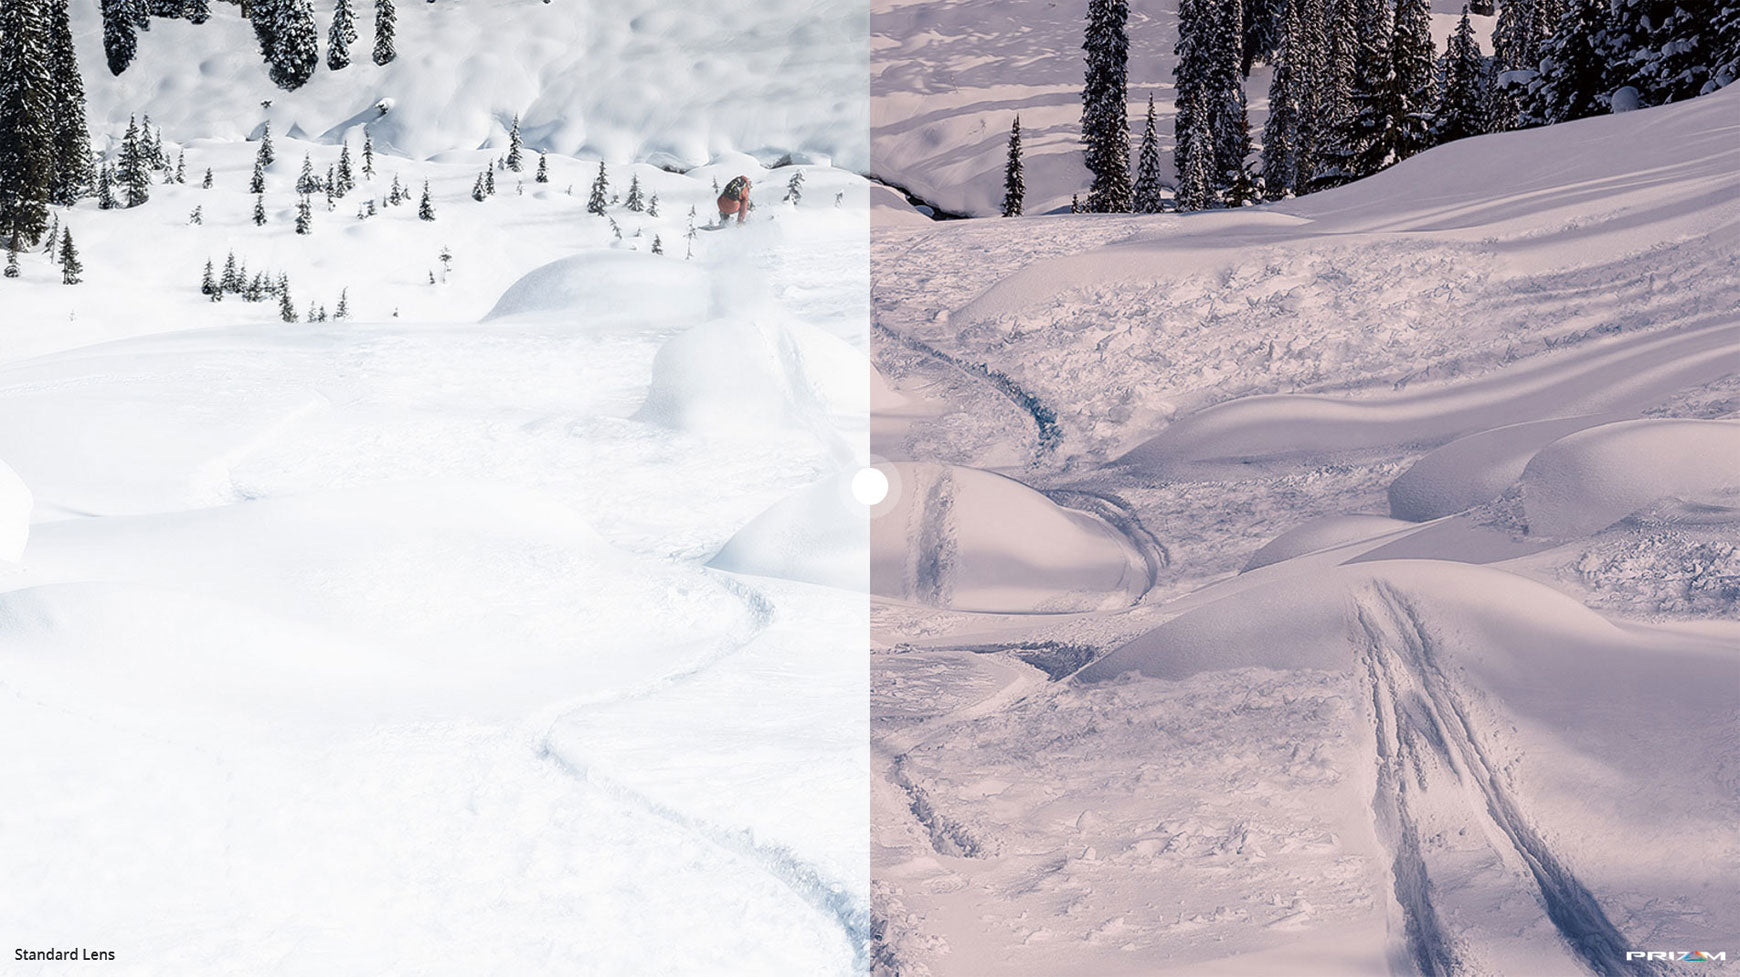 YOU WILL NEVER SEE SNOW THE SAME WAY AGAIN